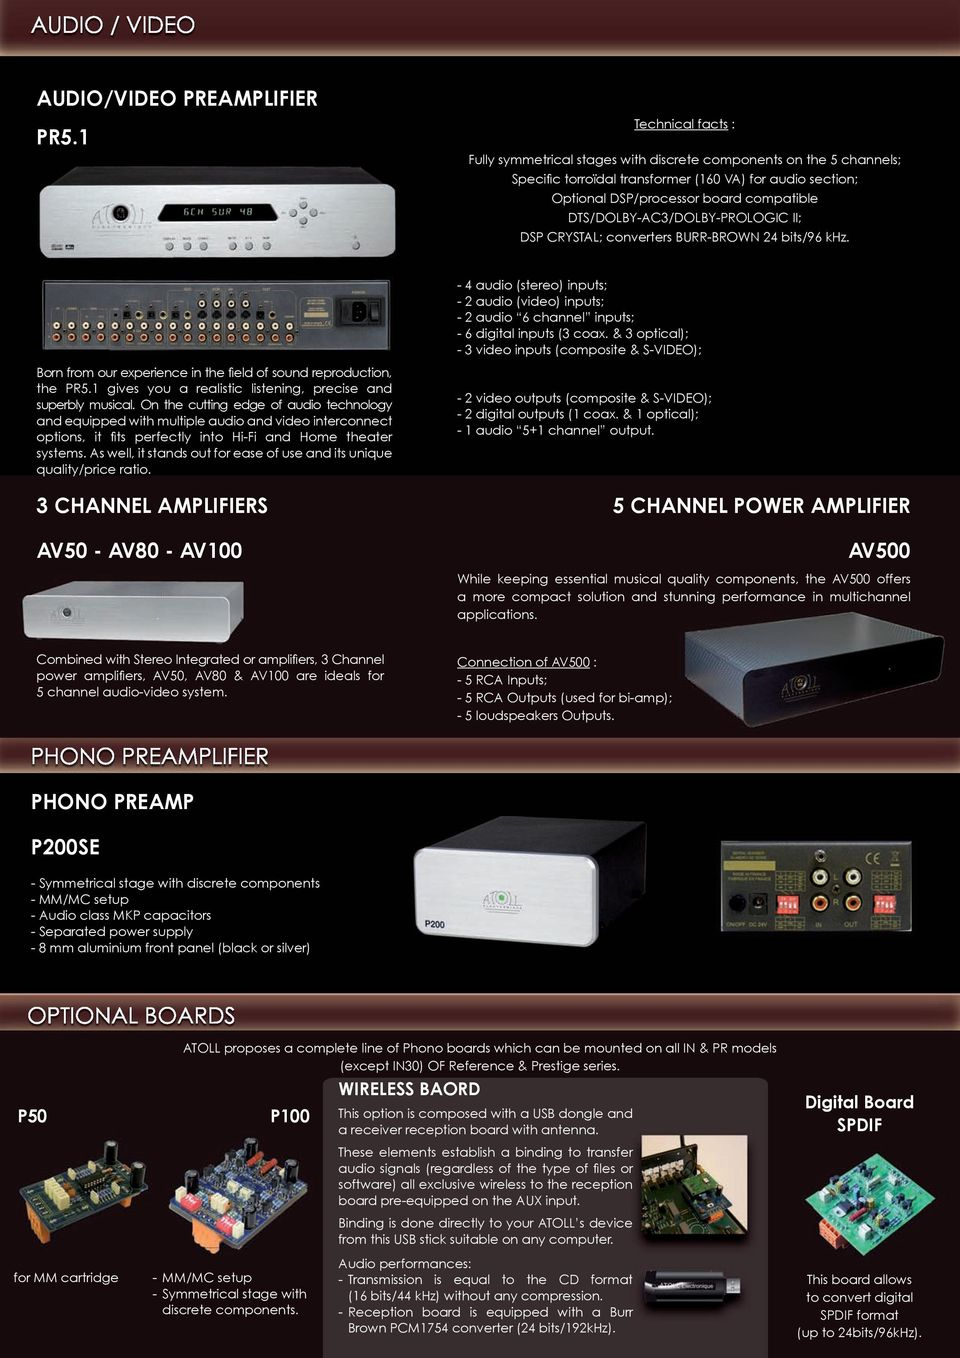 Hifi Products Designed And Made In France Pdf Class A Symmetrical Audio Preamplifier Dts Dolby Ac3 Prologic Ii Dsp Crystal Converters Burr